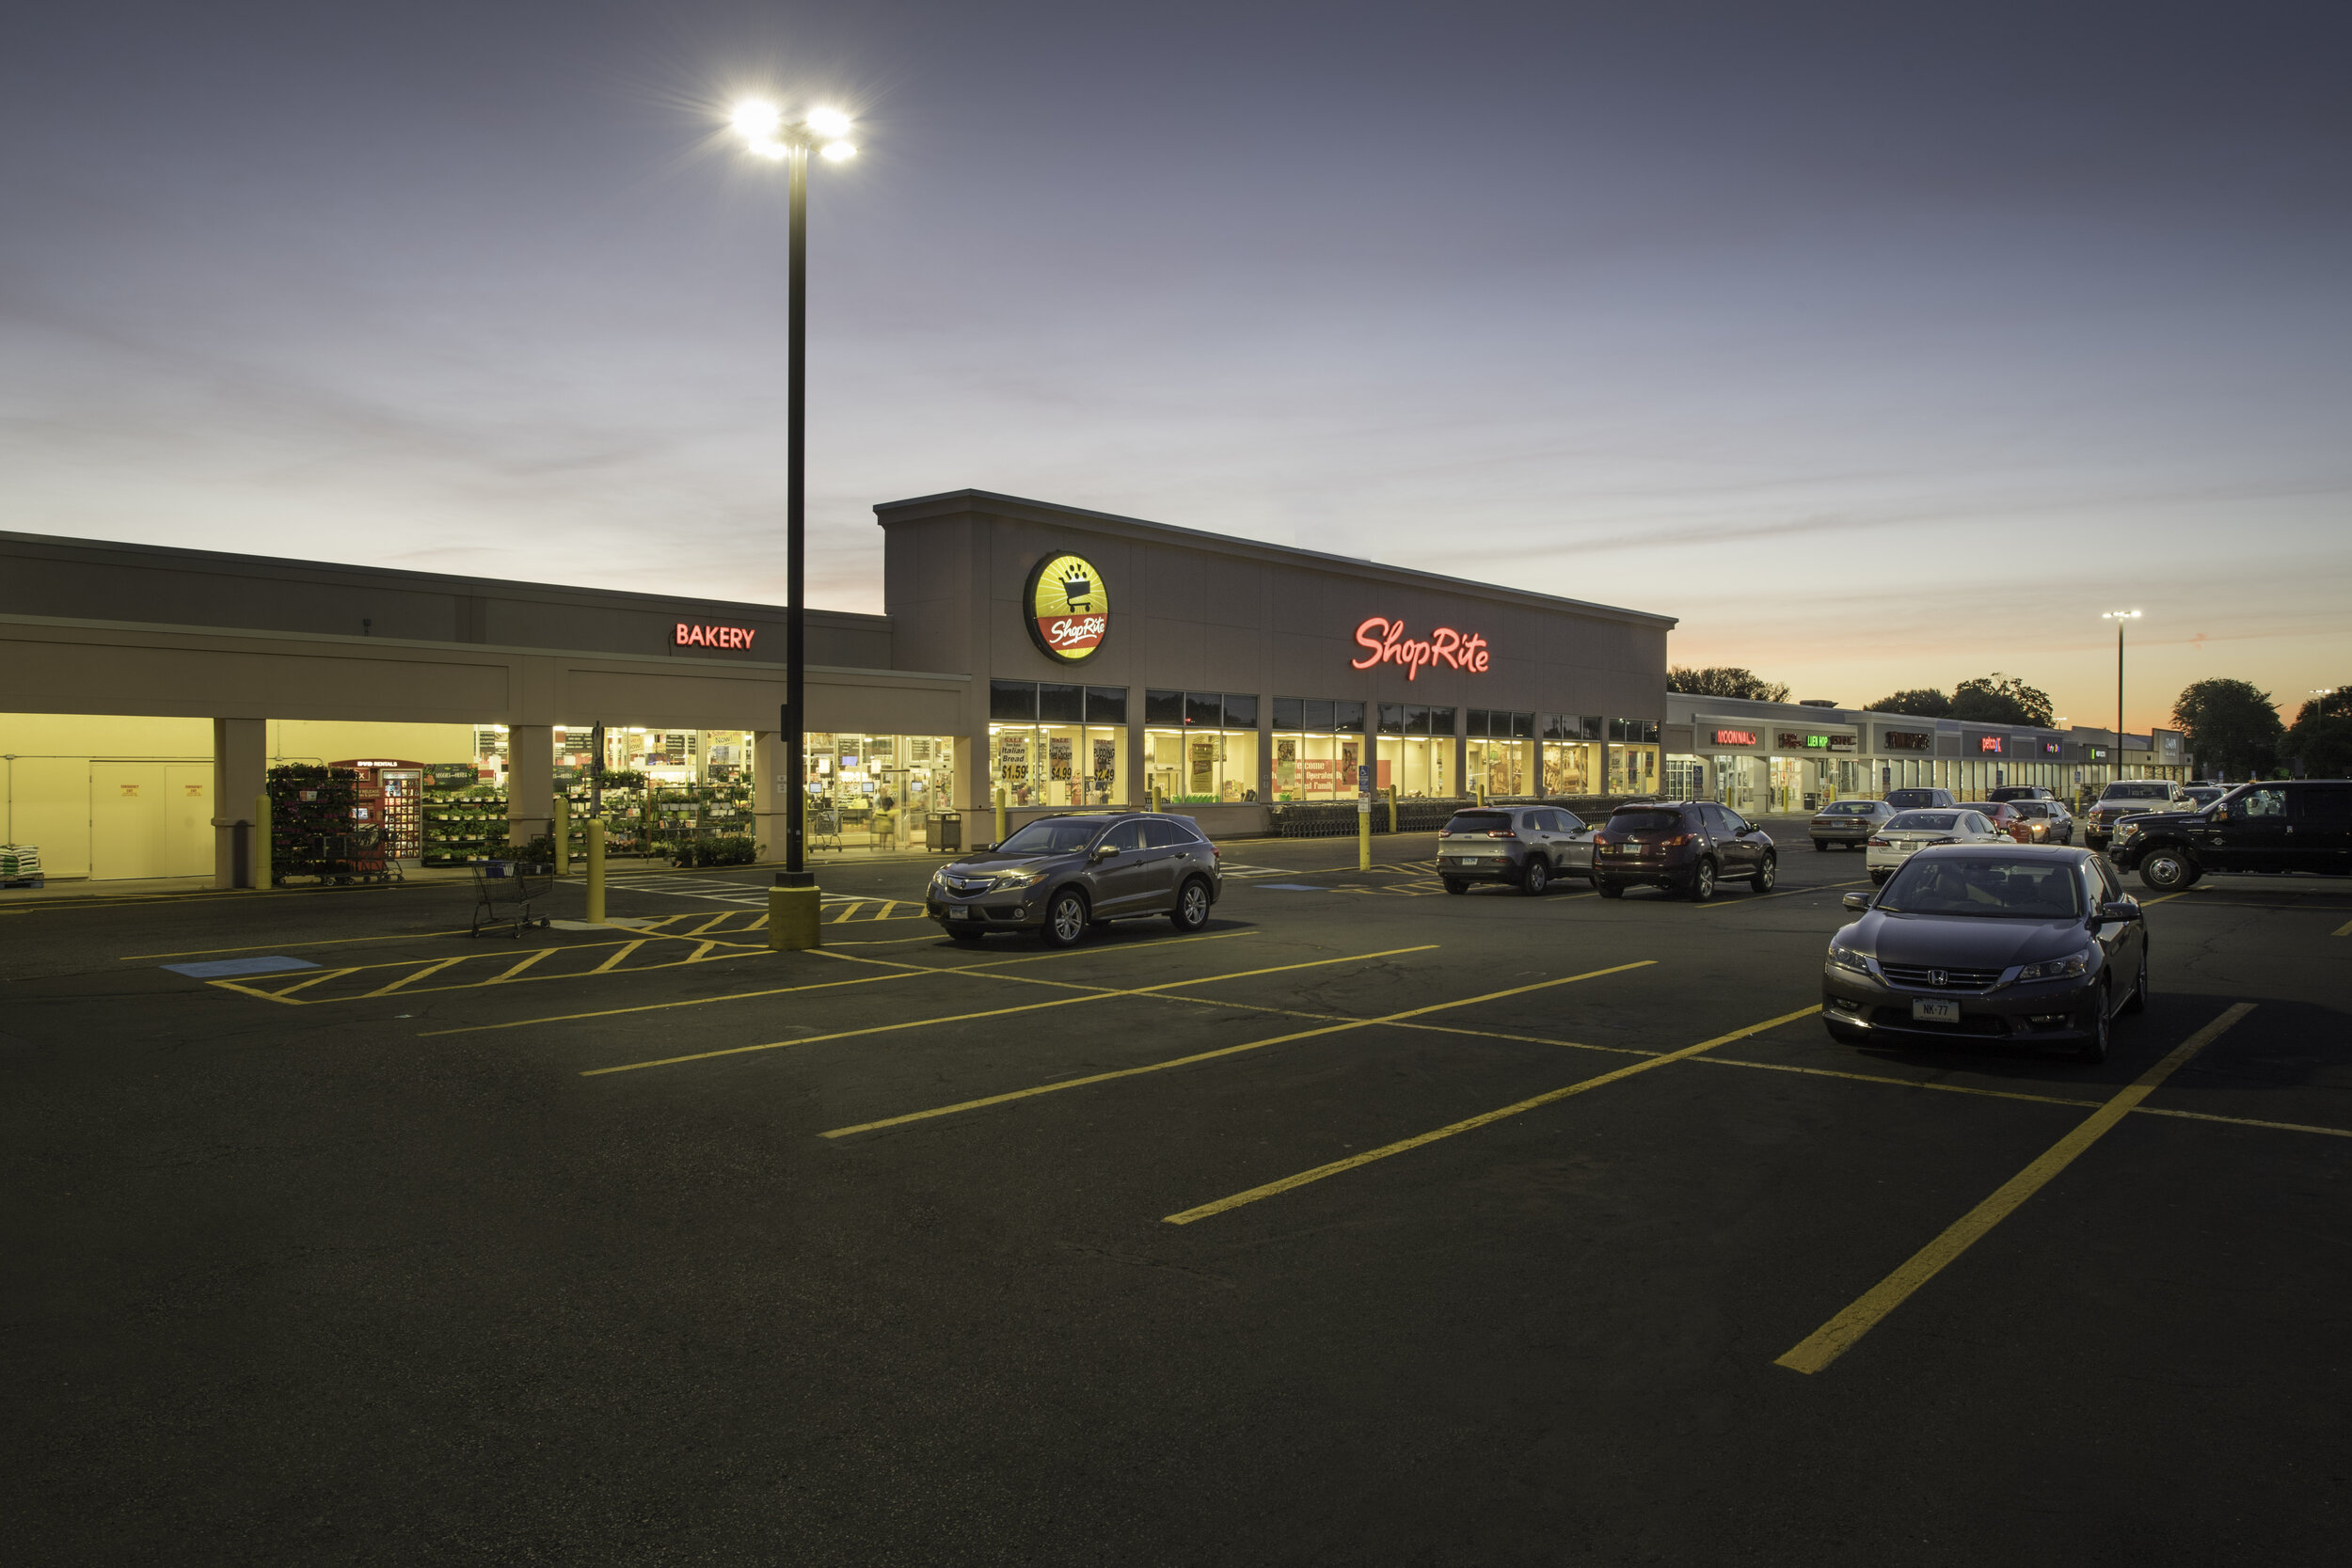 Shop Rite Plaza - 8,350 SF of prime multi-use space available on busy Route 10 in Southington, CT, the major retail artery of the region…